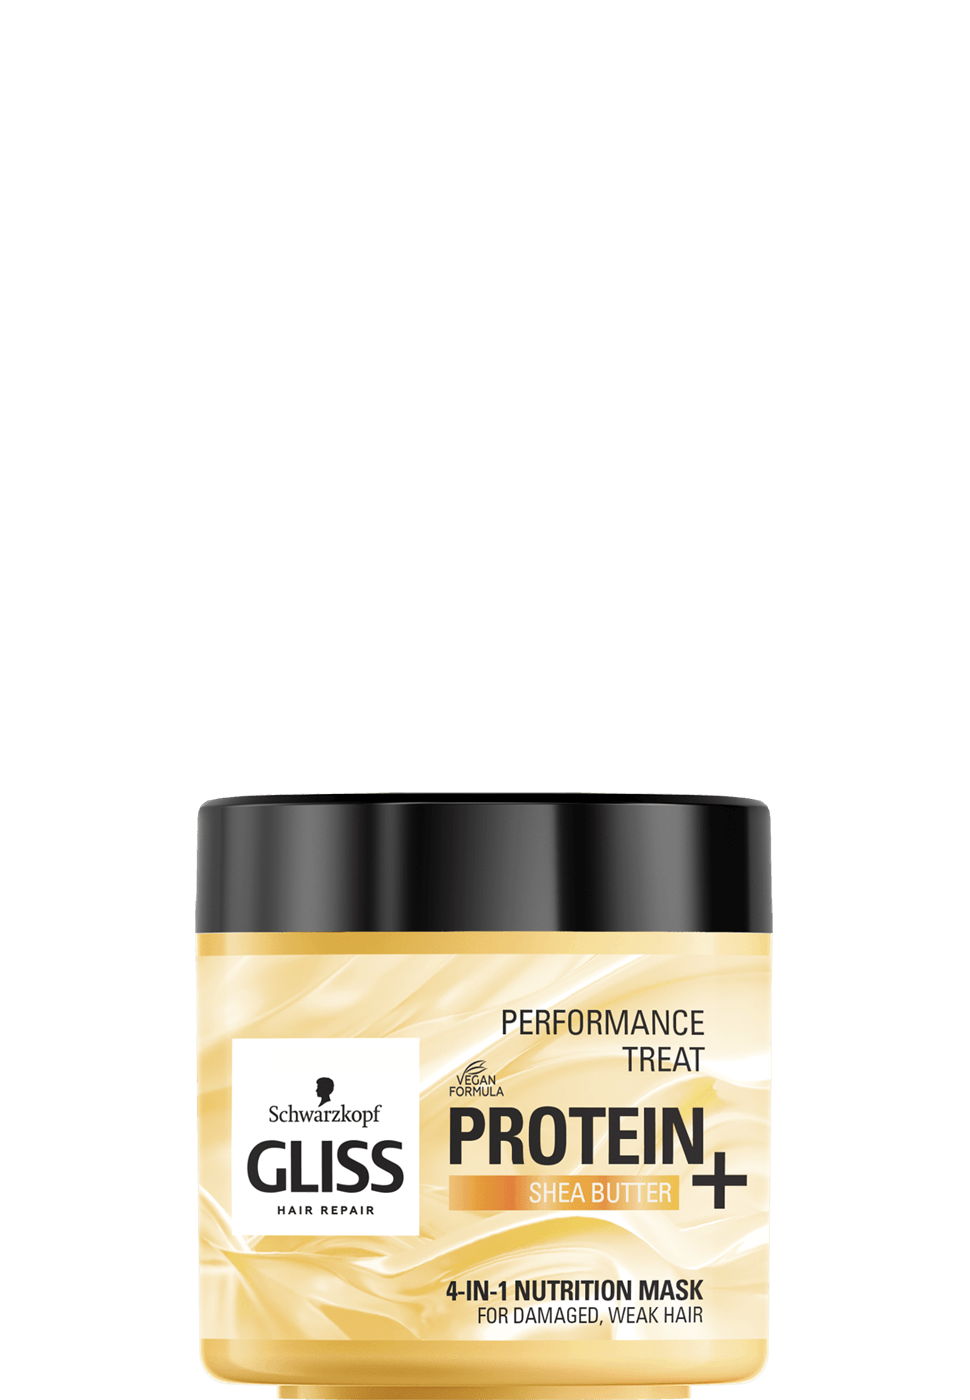 gliss_com_protein_nutrition_mask_970x1400